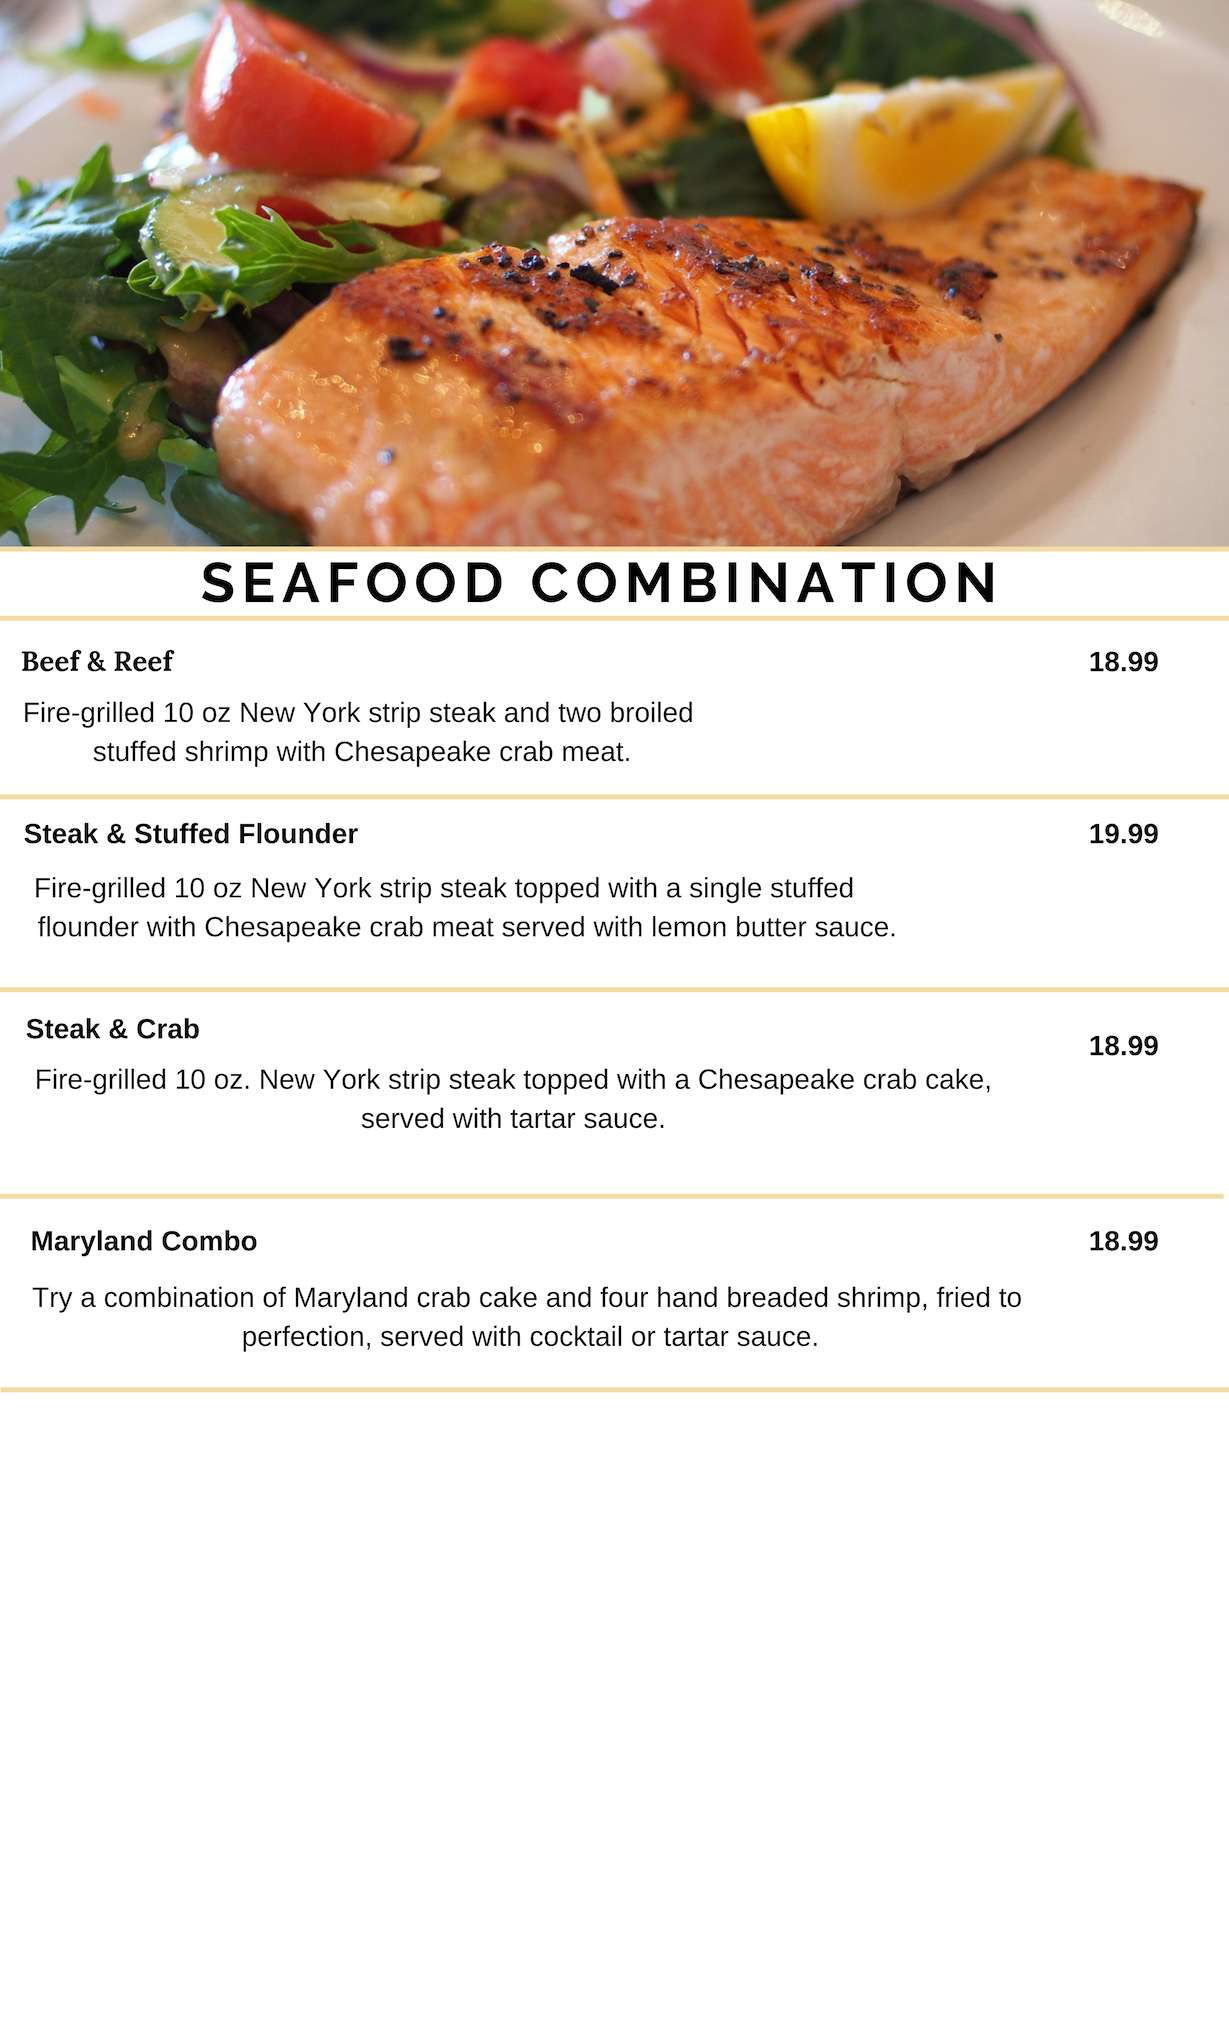 SEAFOOD COMBINATION